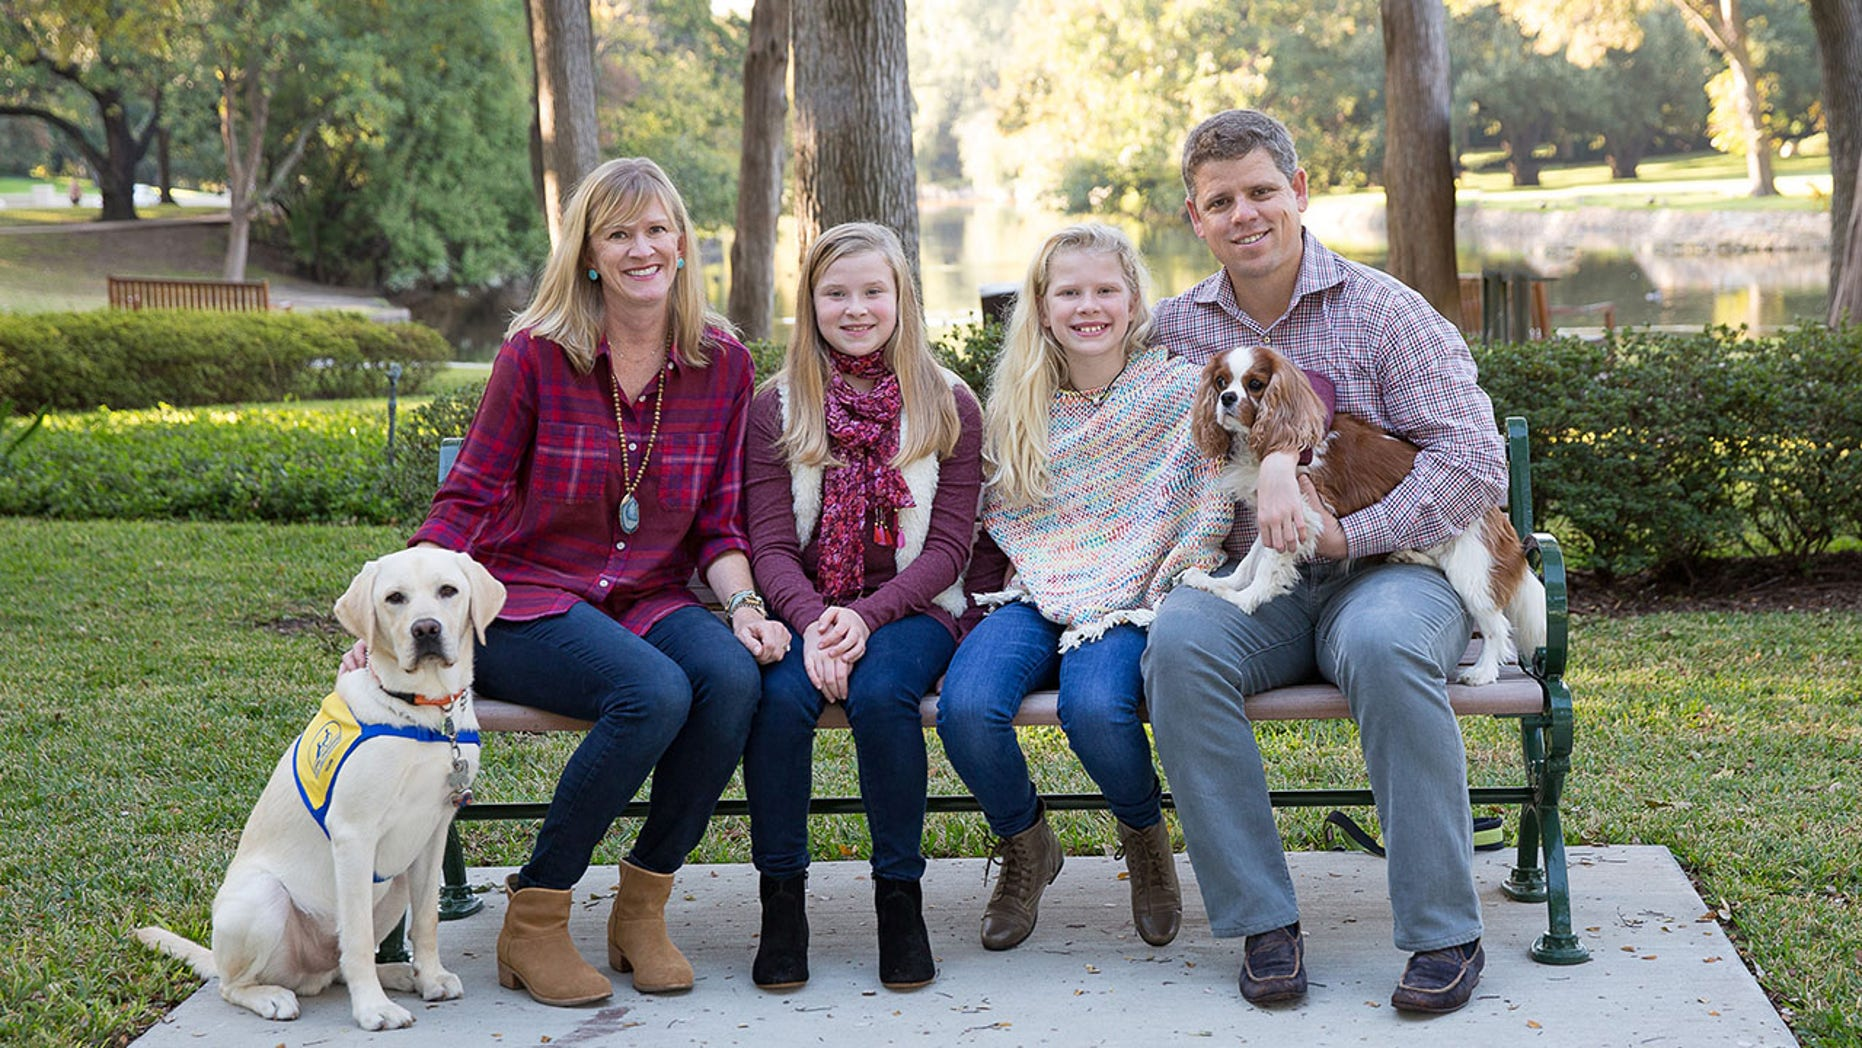 Kelly Harrell shares the emotional and rewarding tale of raising a service dog named Albie.